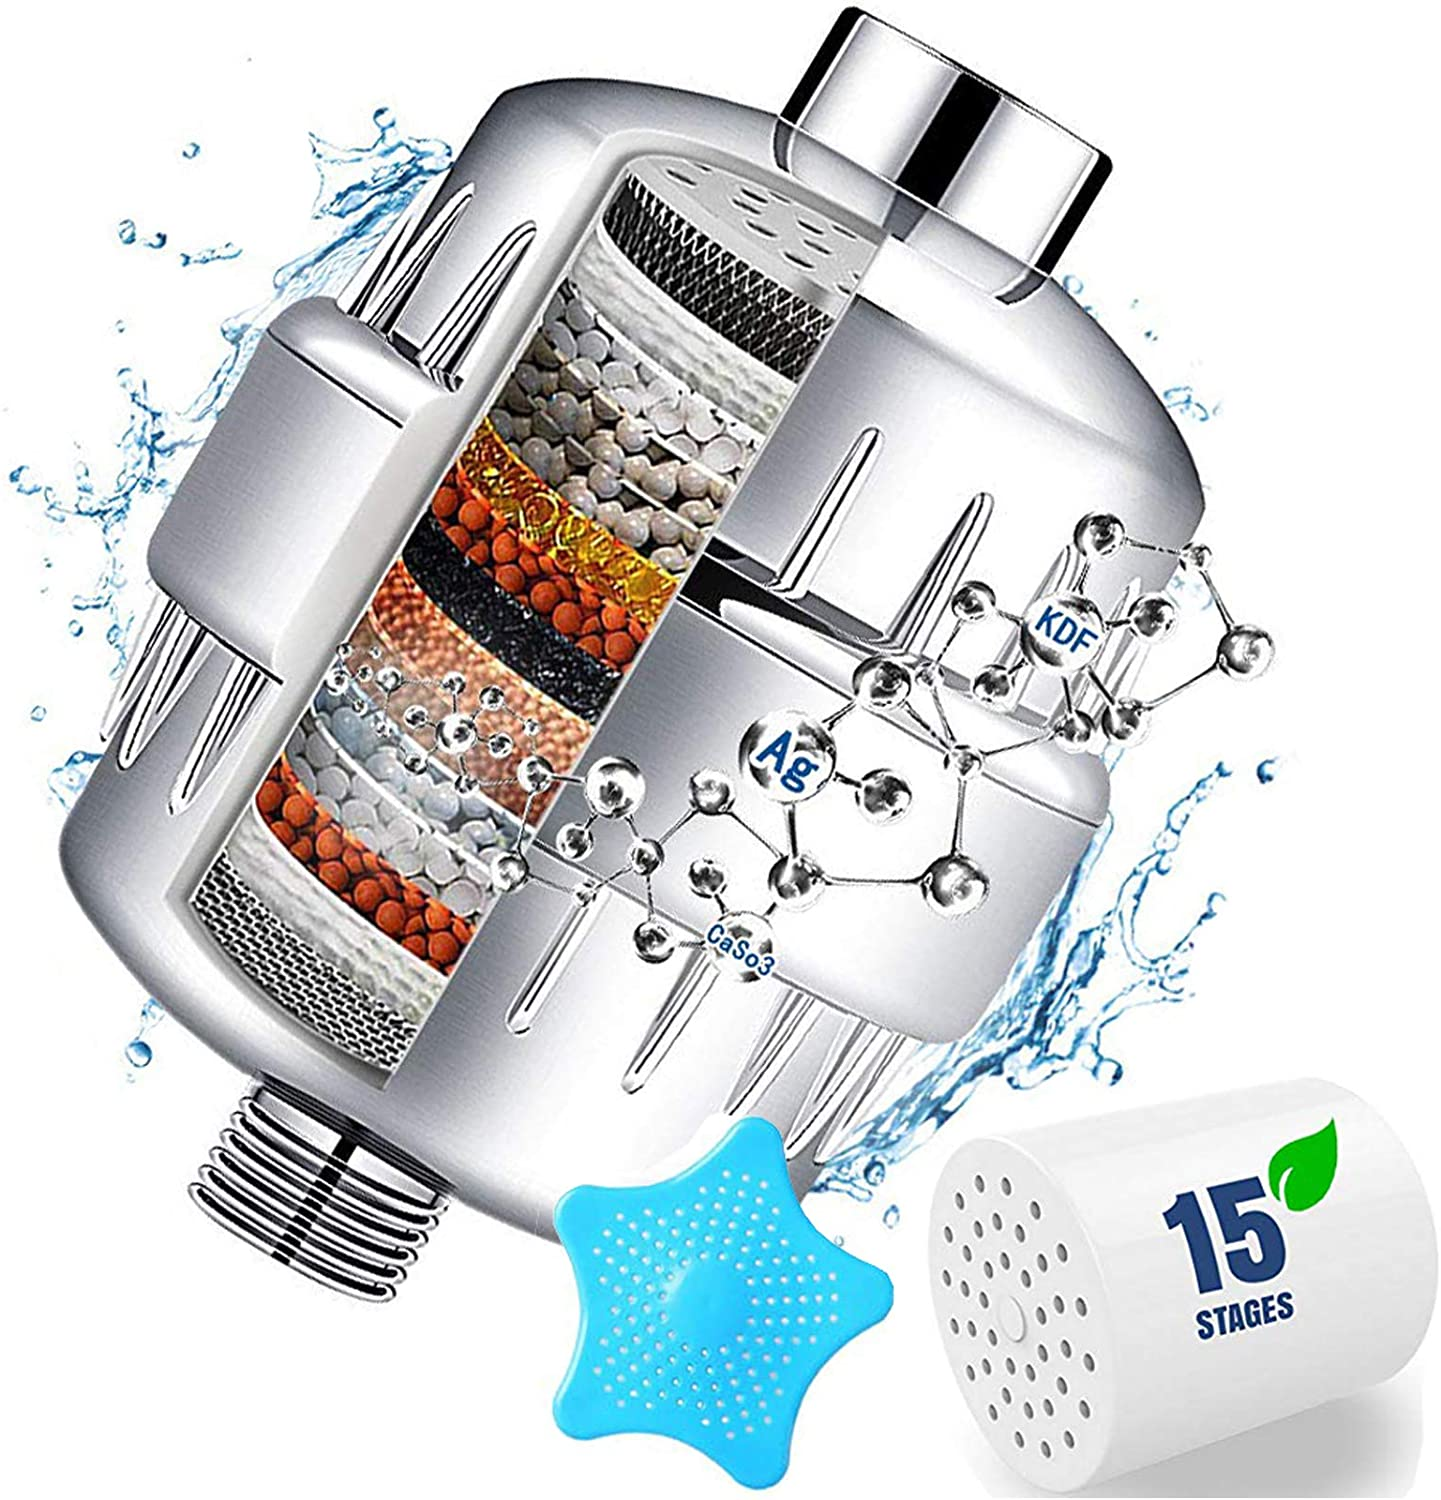 15 Stage Shower Filter with Vitamin Water - Max 76% OFF Hard Spring new work one after another C Sof for